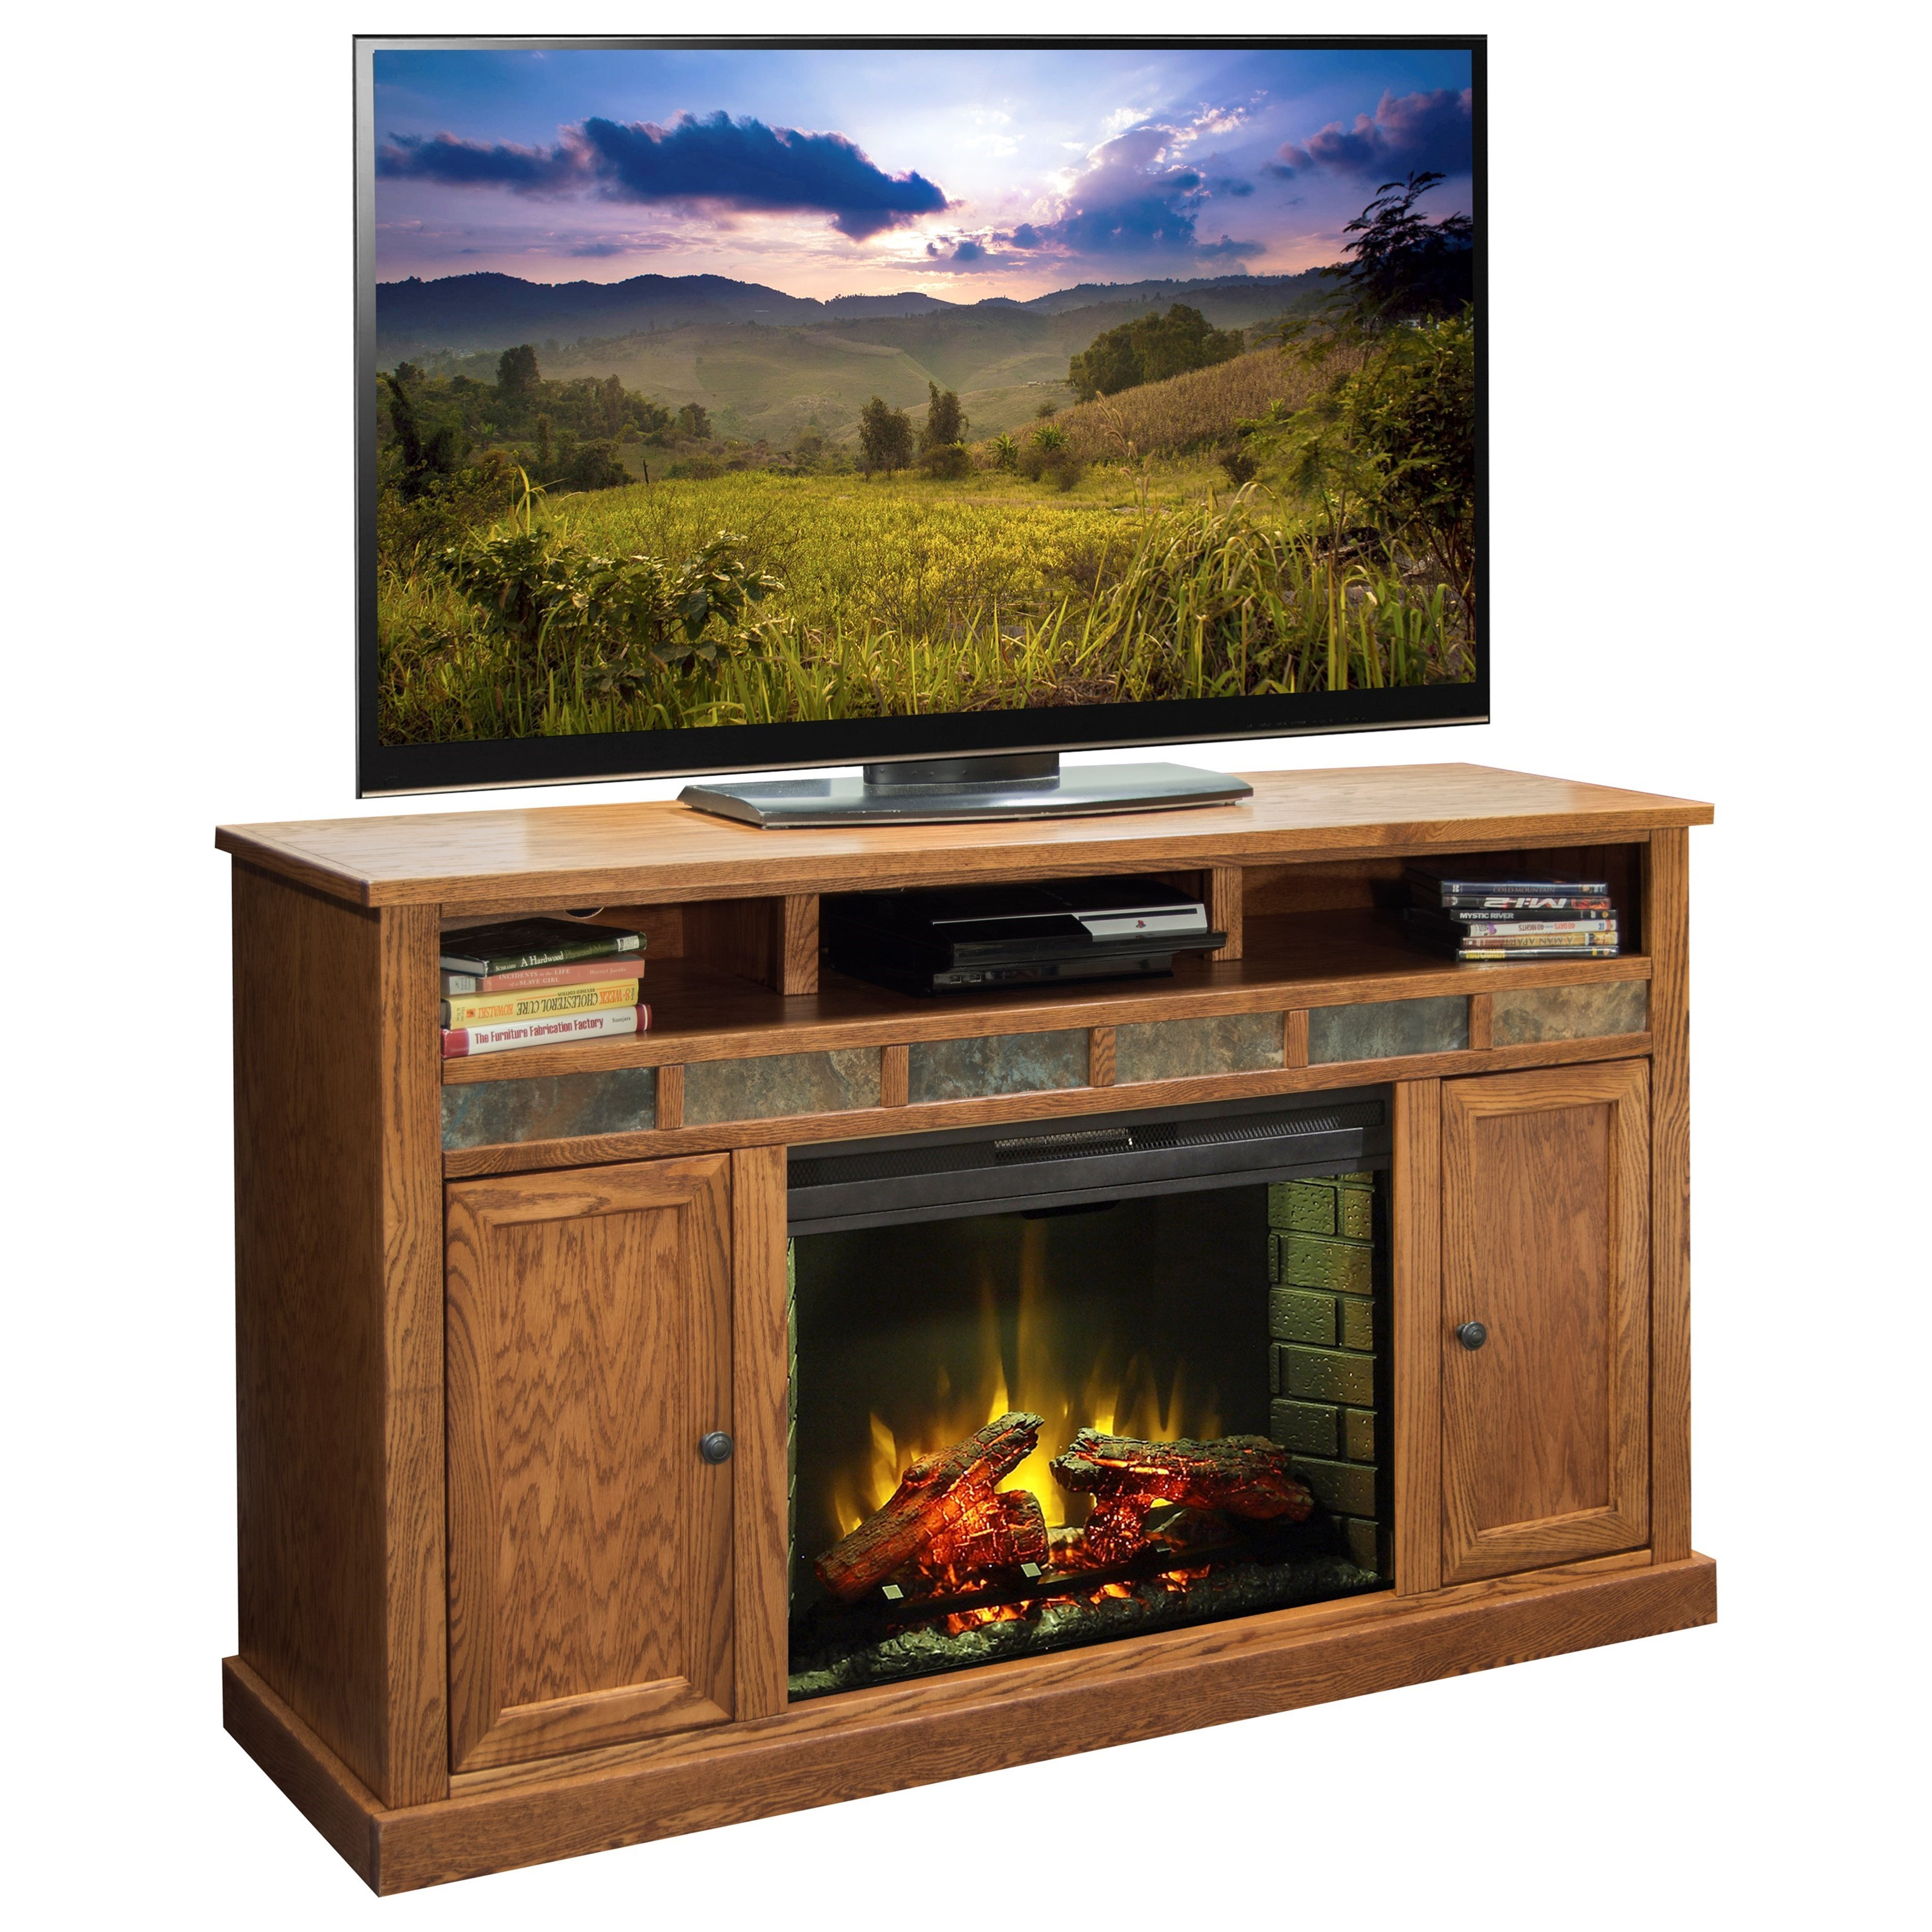 "Legends Furniture Oak Creek 62"" Fireplace Media Center - Item Number: OC5101.GDO"